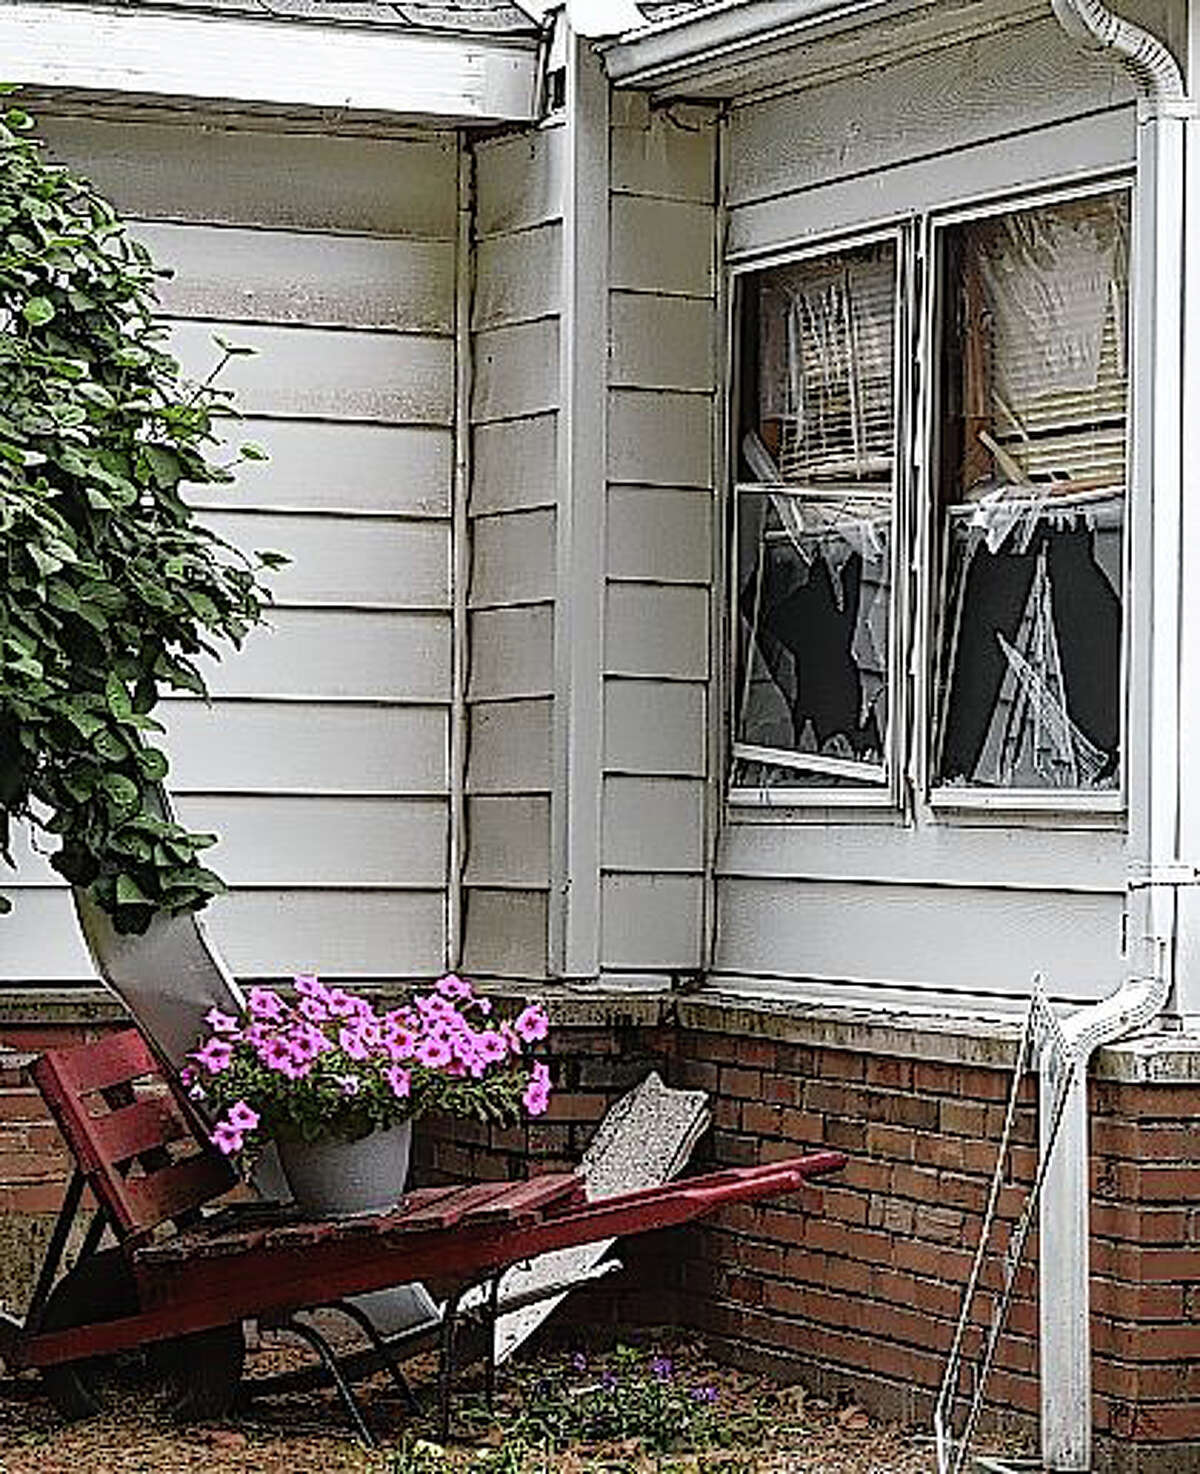 An explosion shattered the windows of a house owned by Carol and Stanley Snyder in Meredosia.